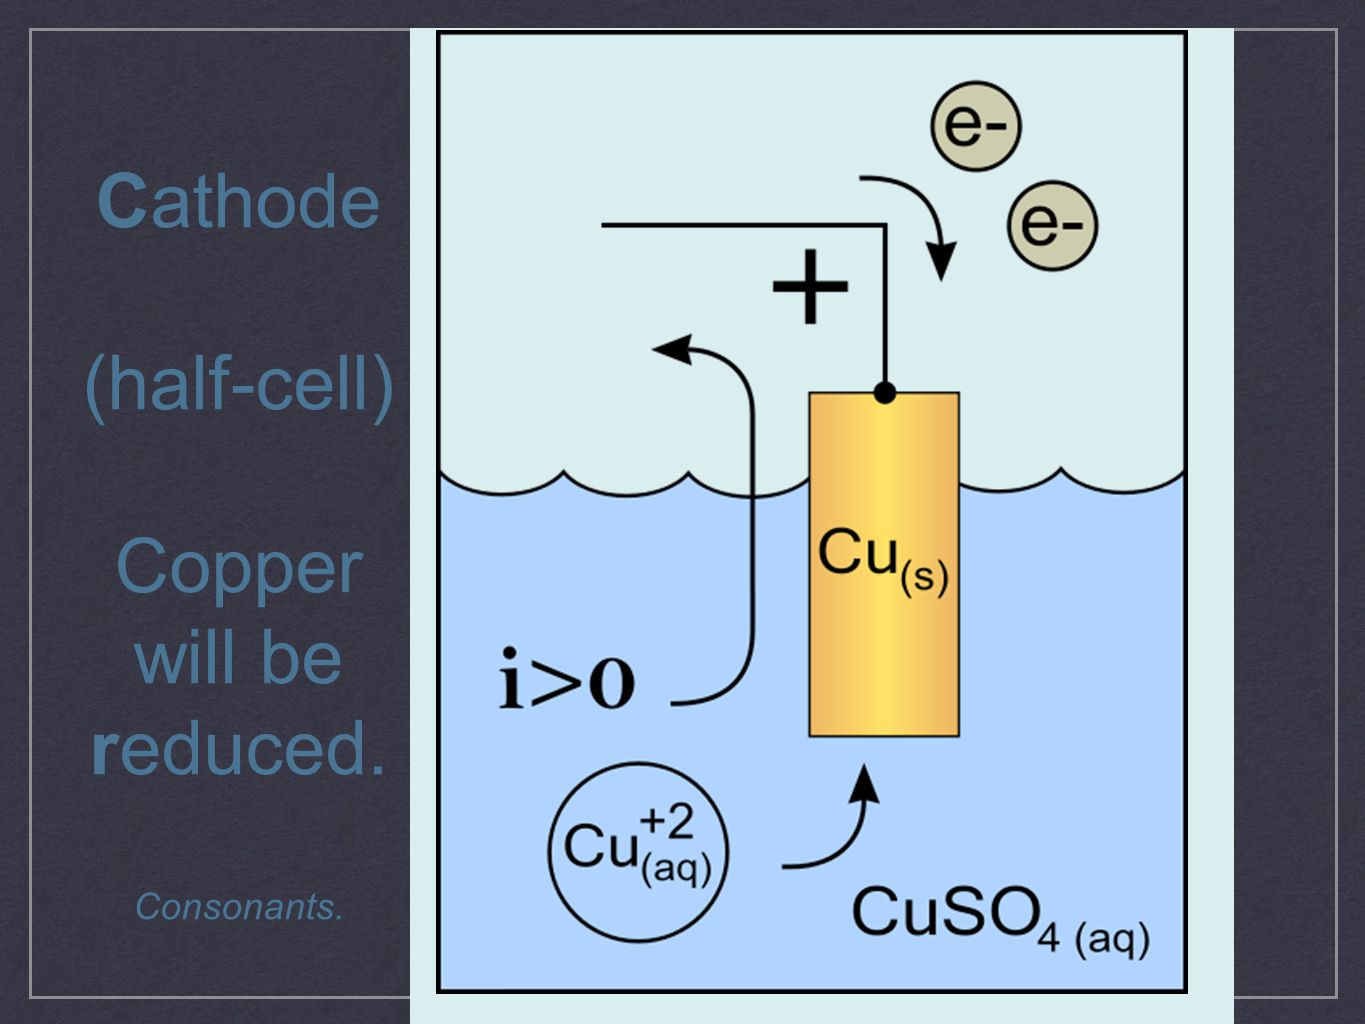 Cathode (half-cell) Copper will be reduced. Consonants.